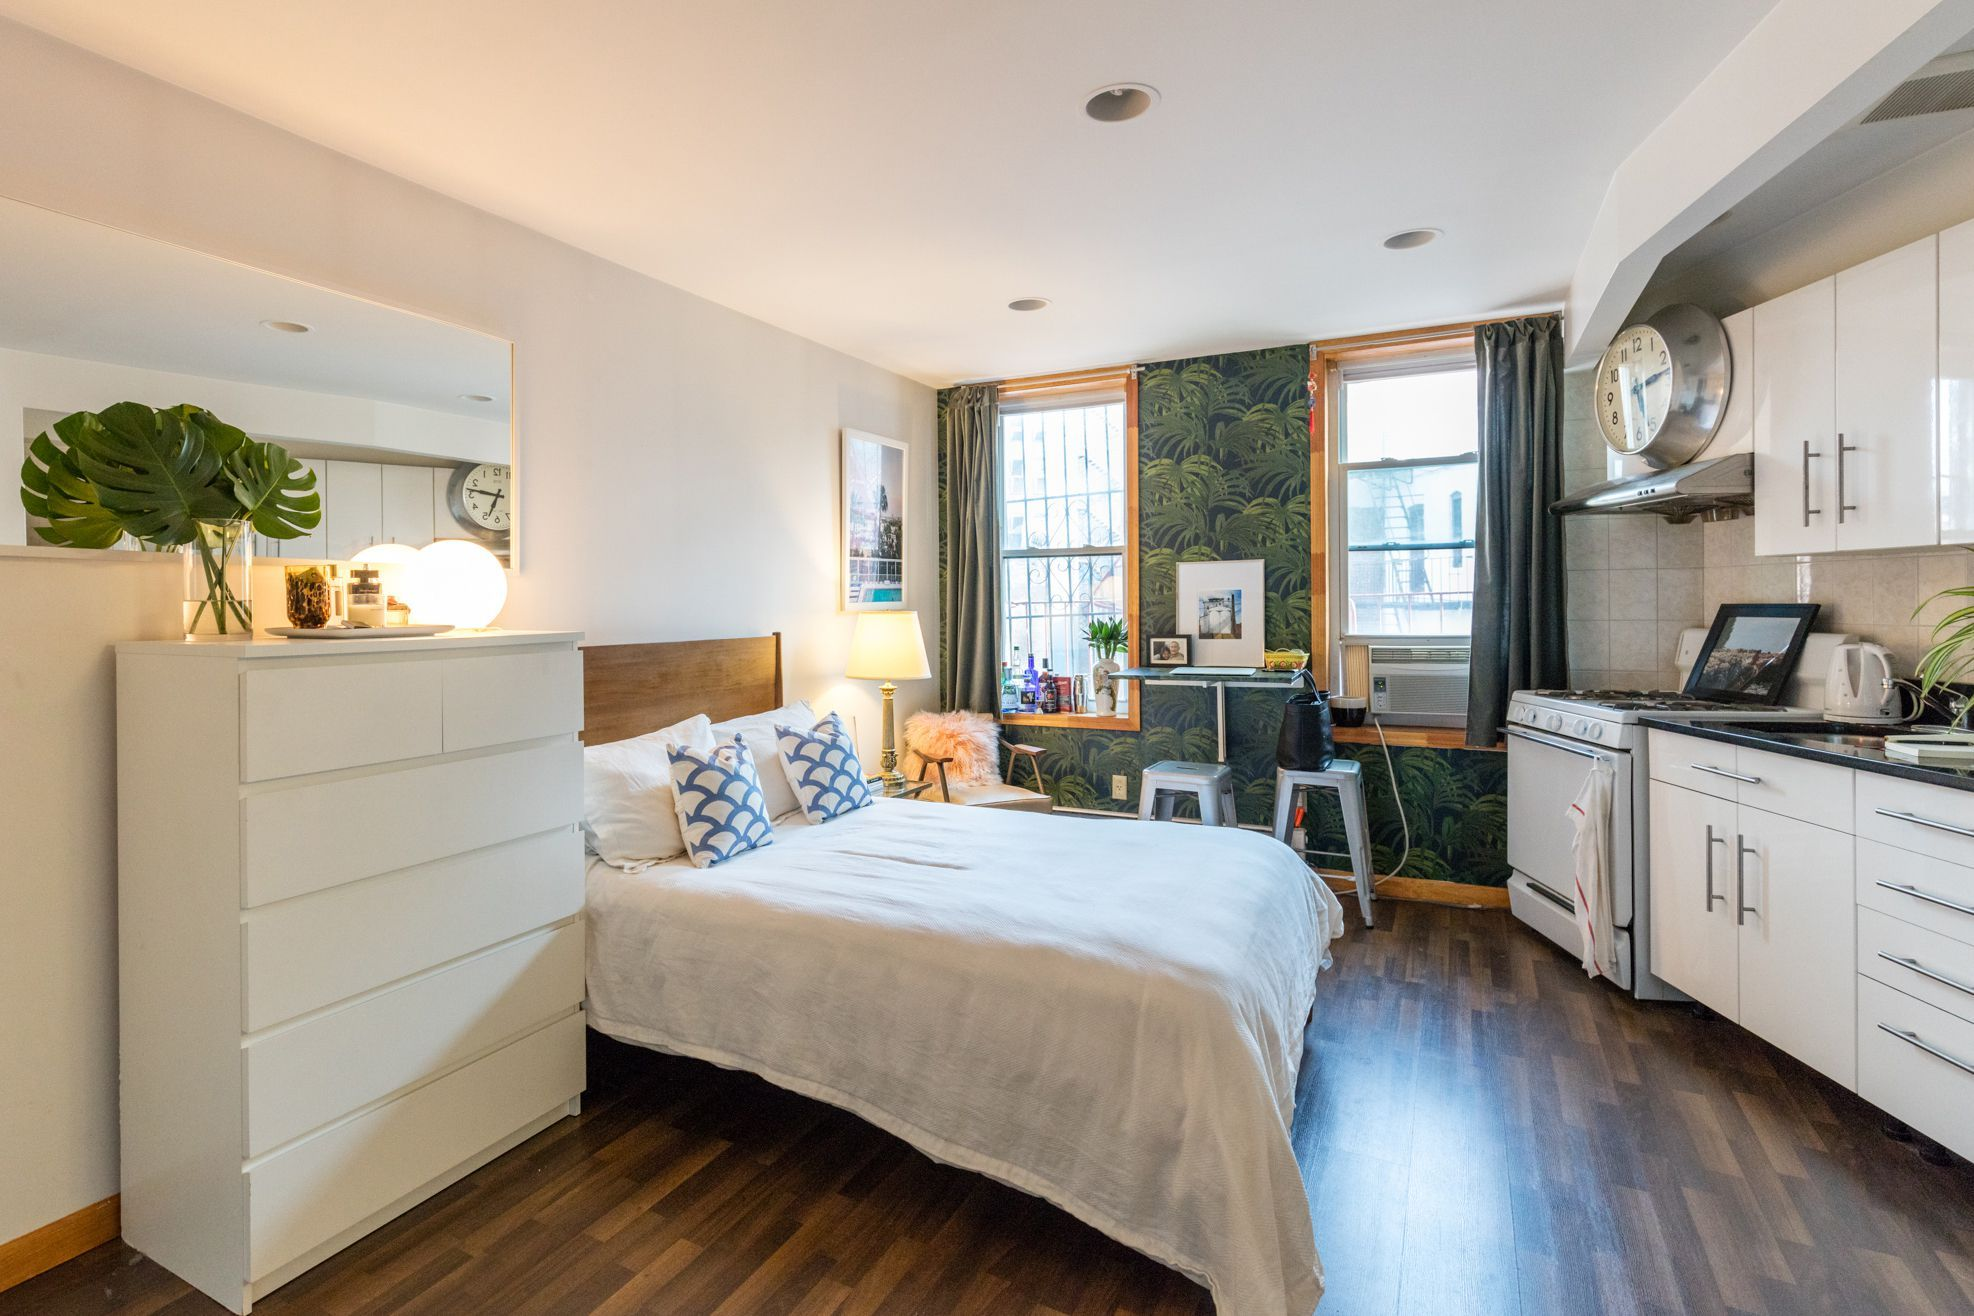 Amazing Photo Of Efficiency Apartment Ideas 12 Perfect Studio Layouts That Work